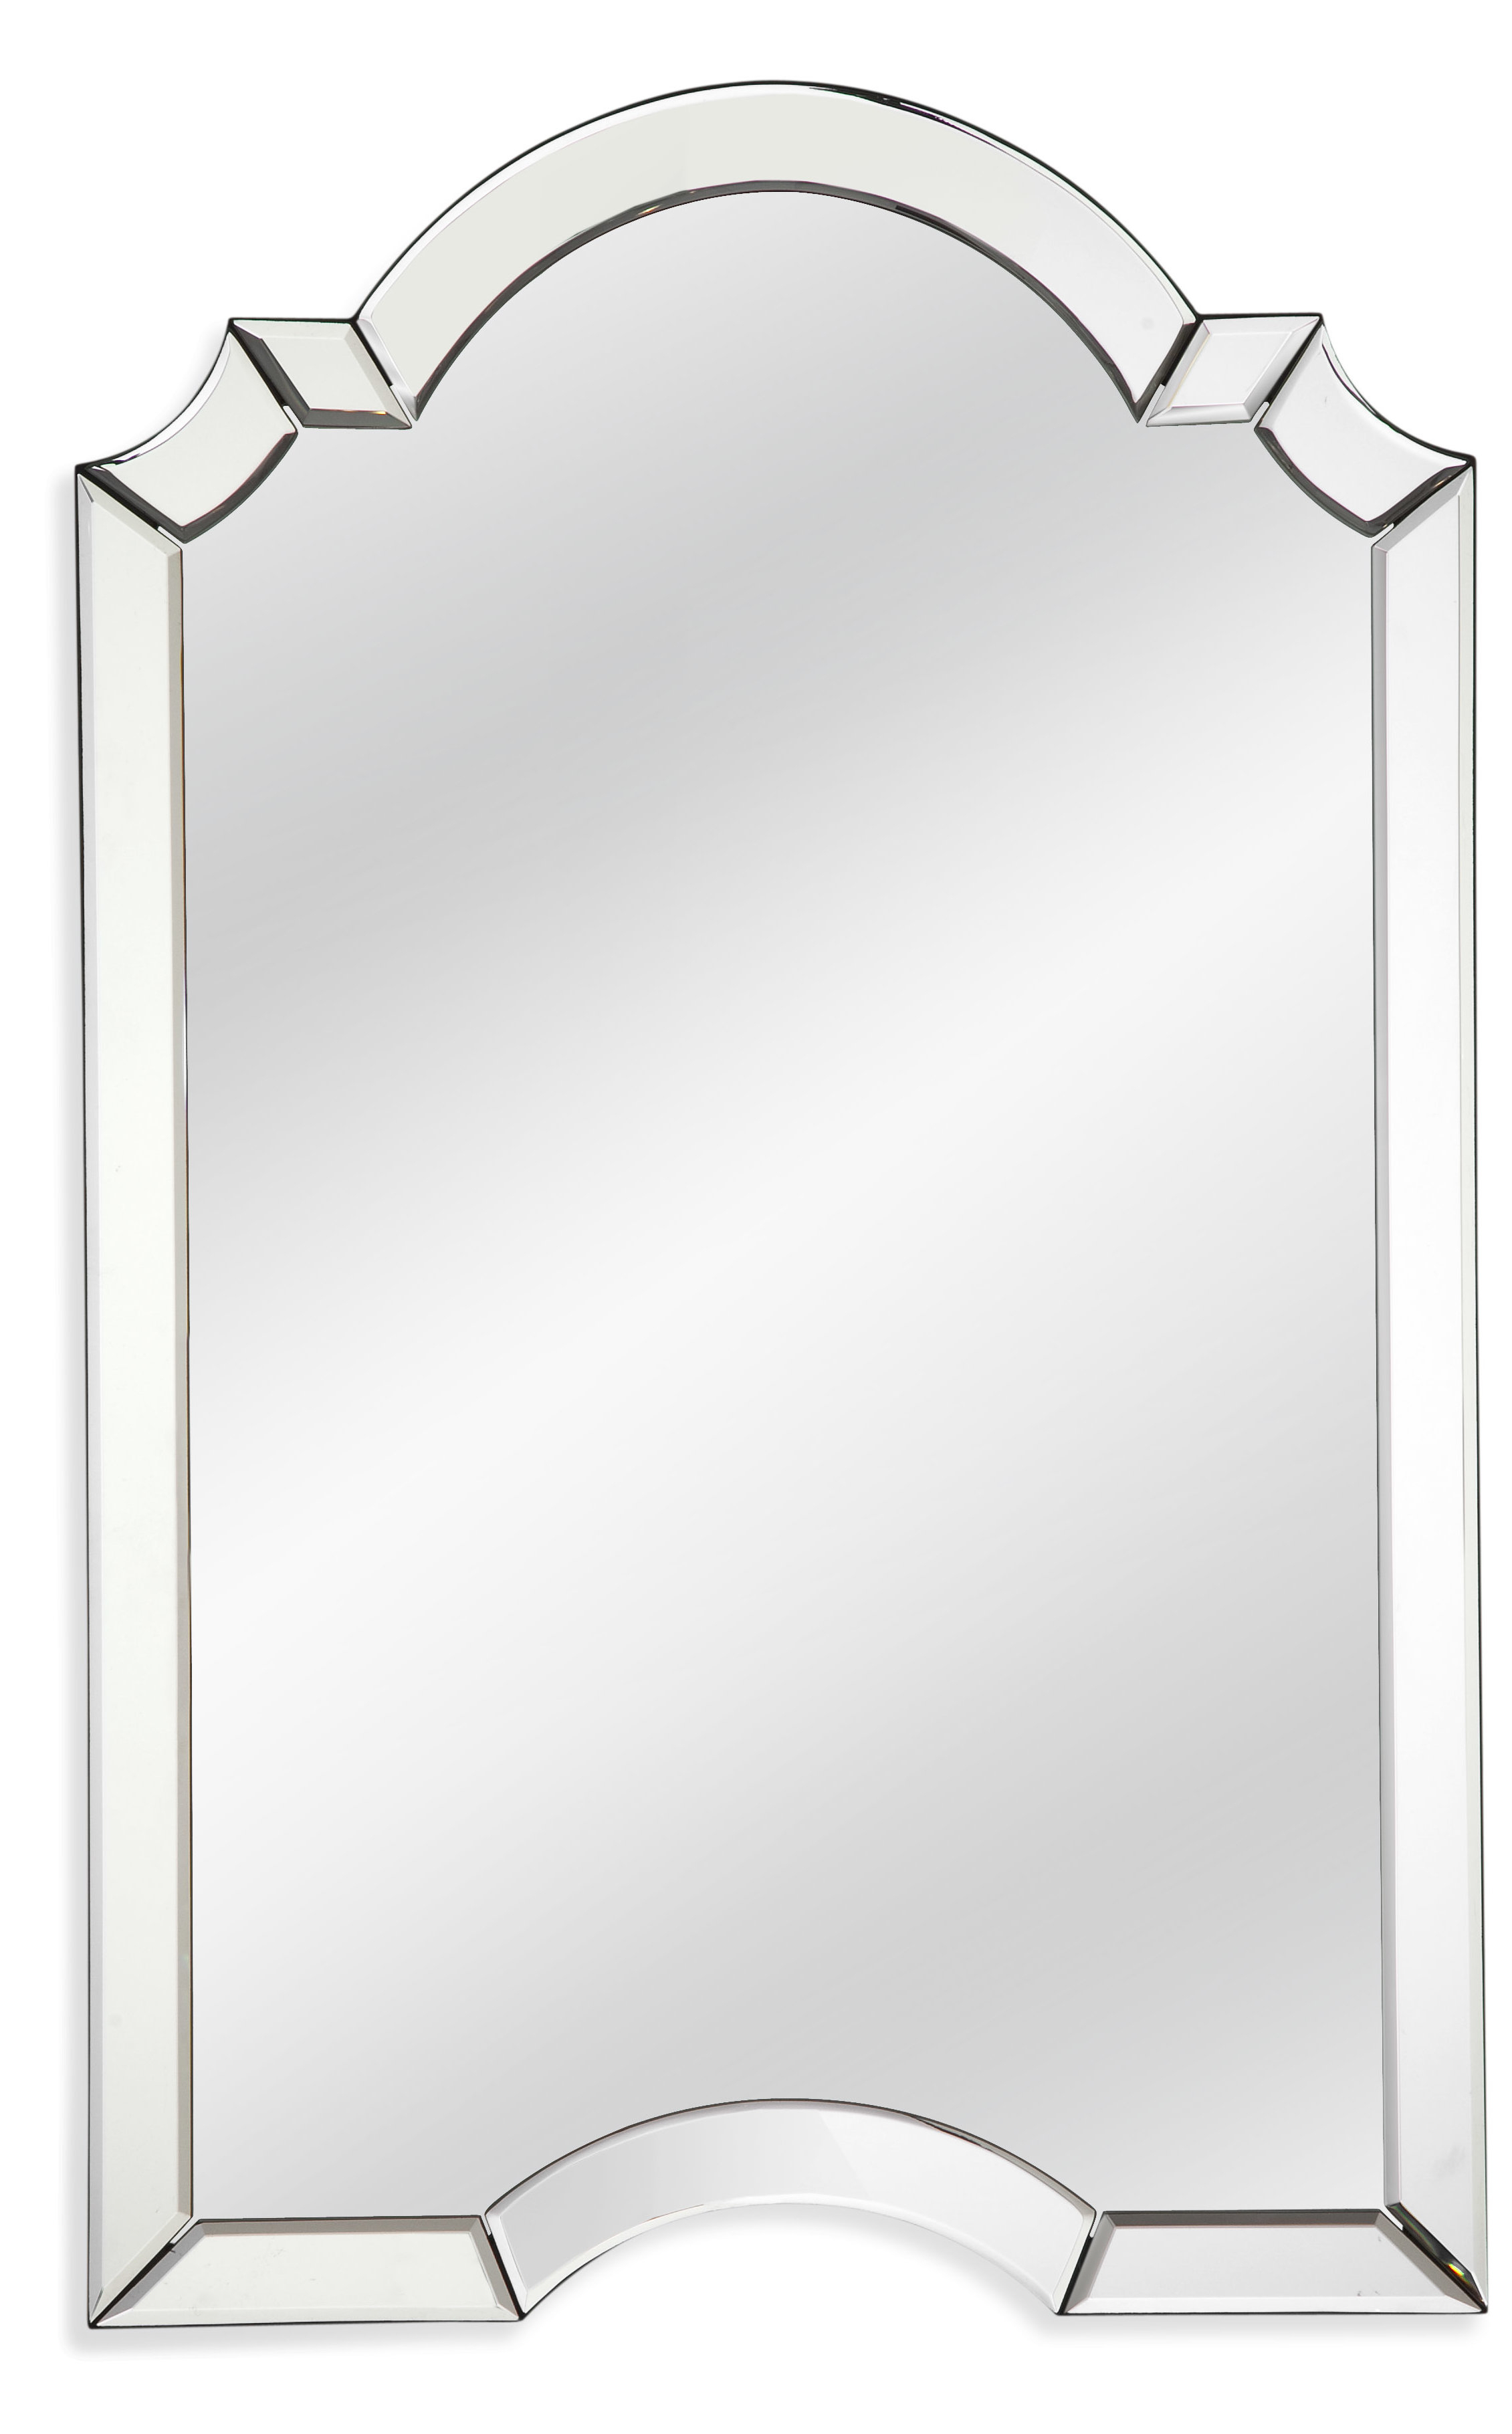 Modern Arch / Crowned Top Wall Mirrors | Allmodern Regarding Fifi Contemporary Arch Wall Mirrors (View 19 of 30)